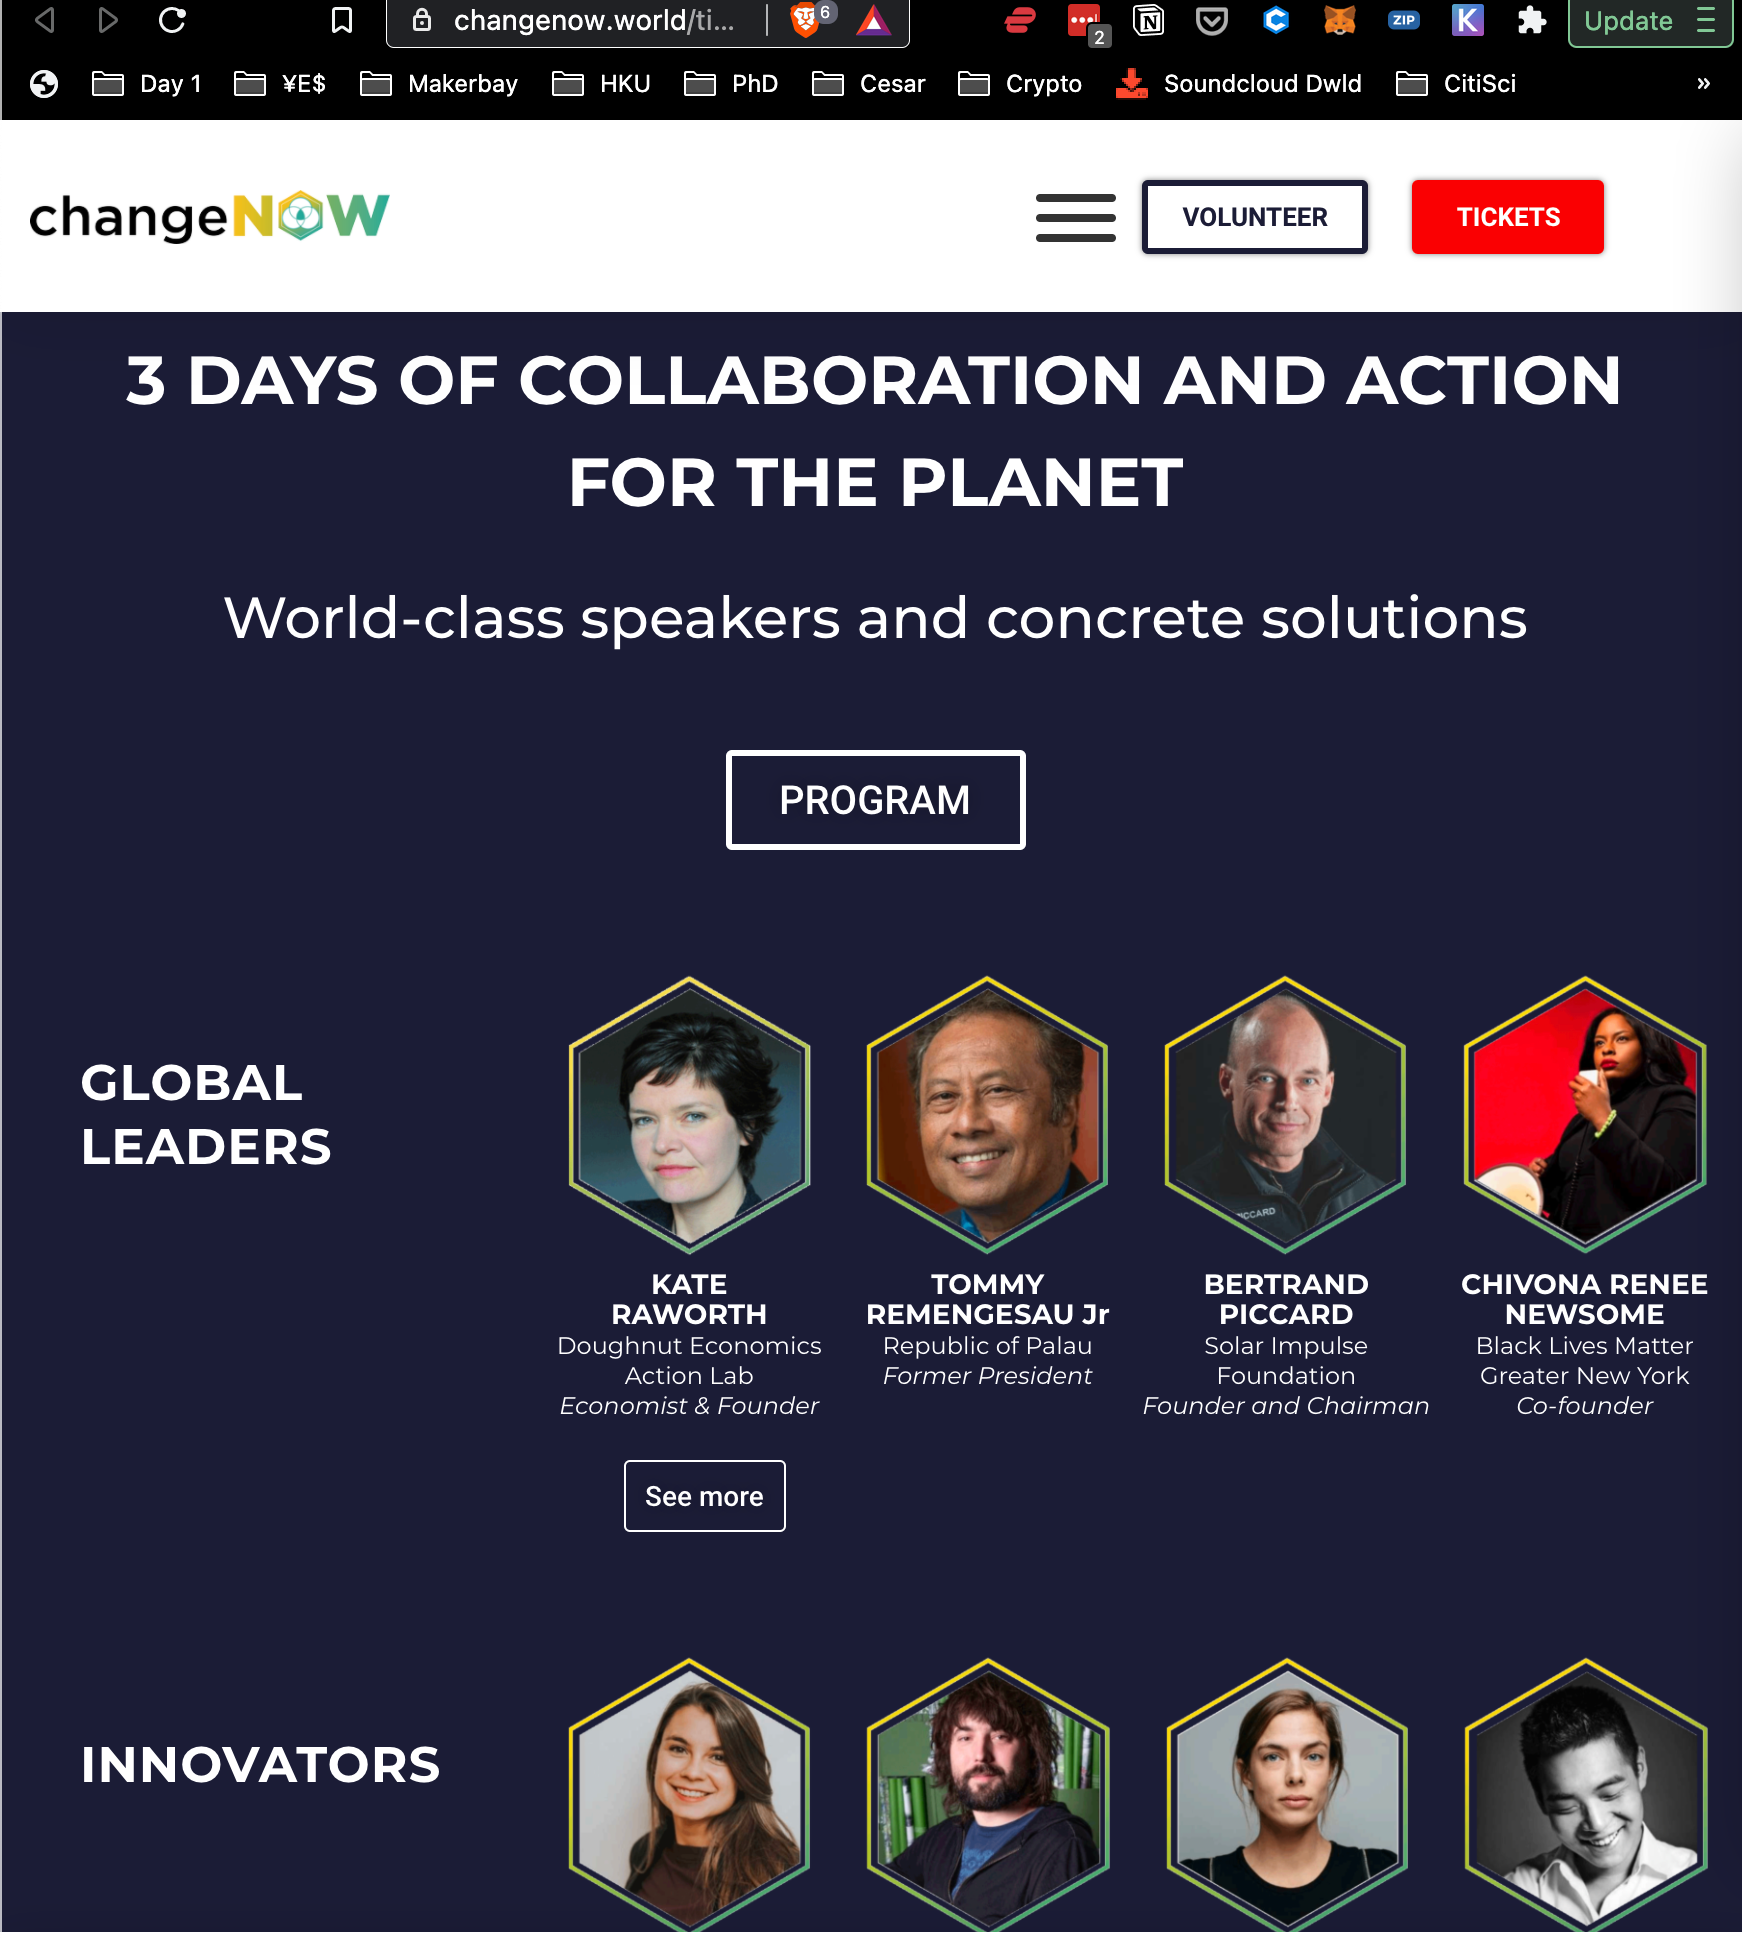 ChangeNOW, World's largest event for the planet